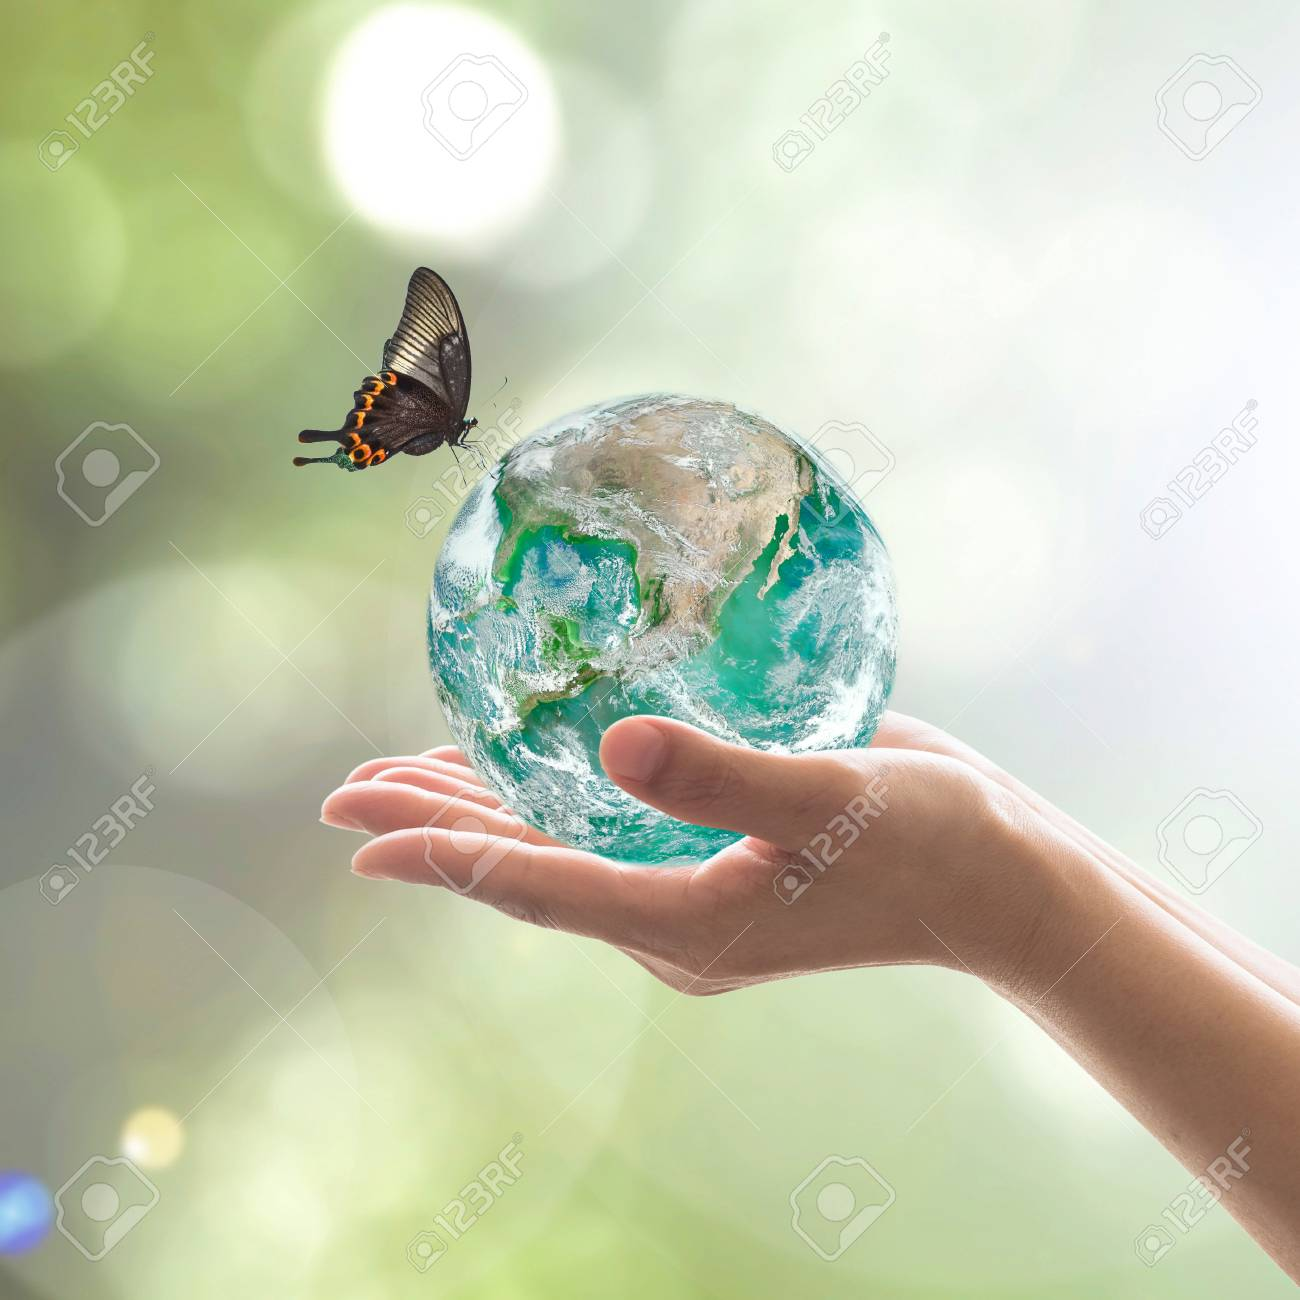 World environment day and environmental friendly concept with green earth on volunteer's hands. - 121252951